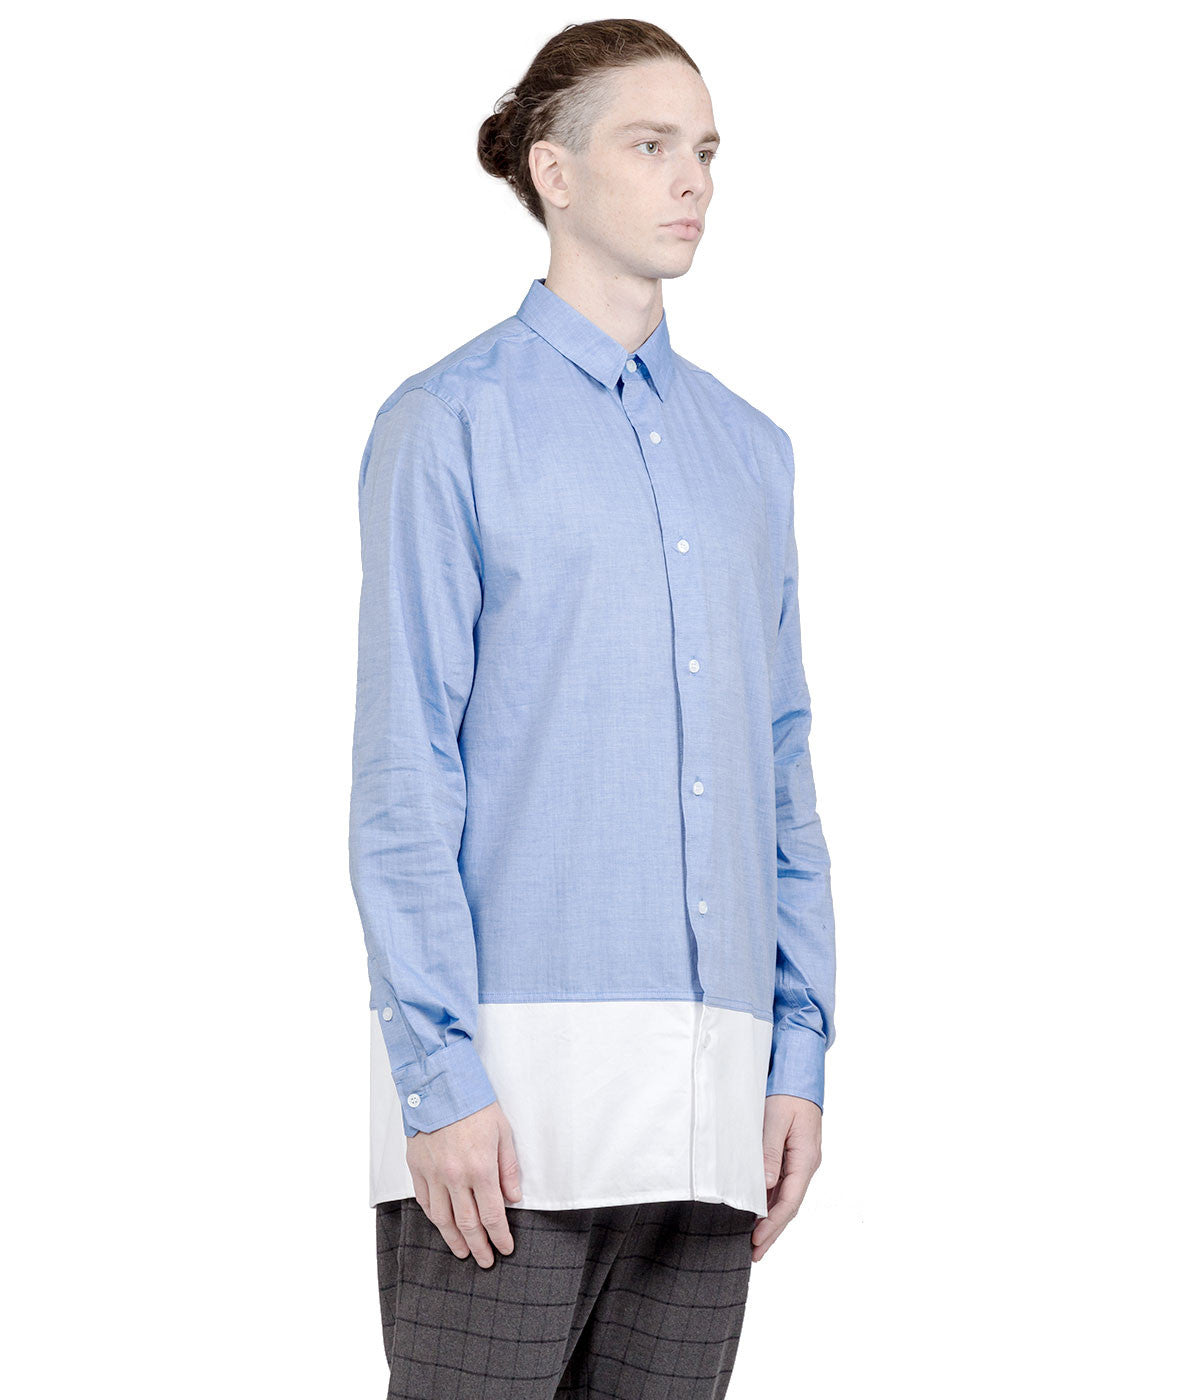 Blue & White Elongated Button-Up Shirt